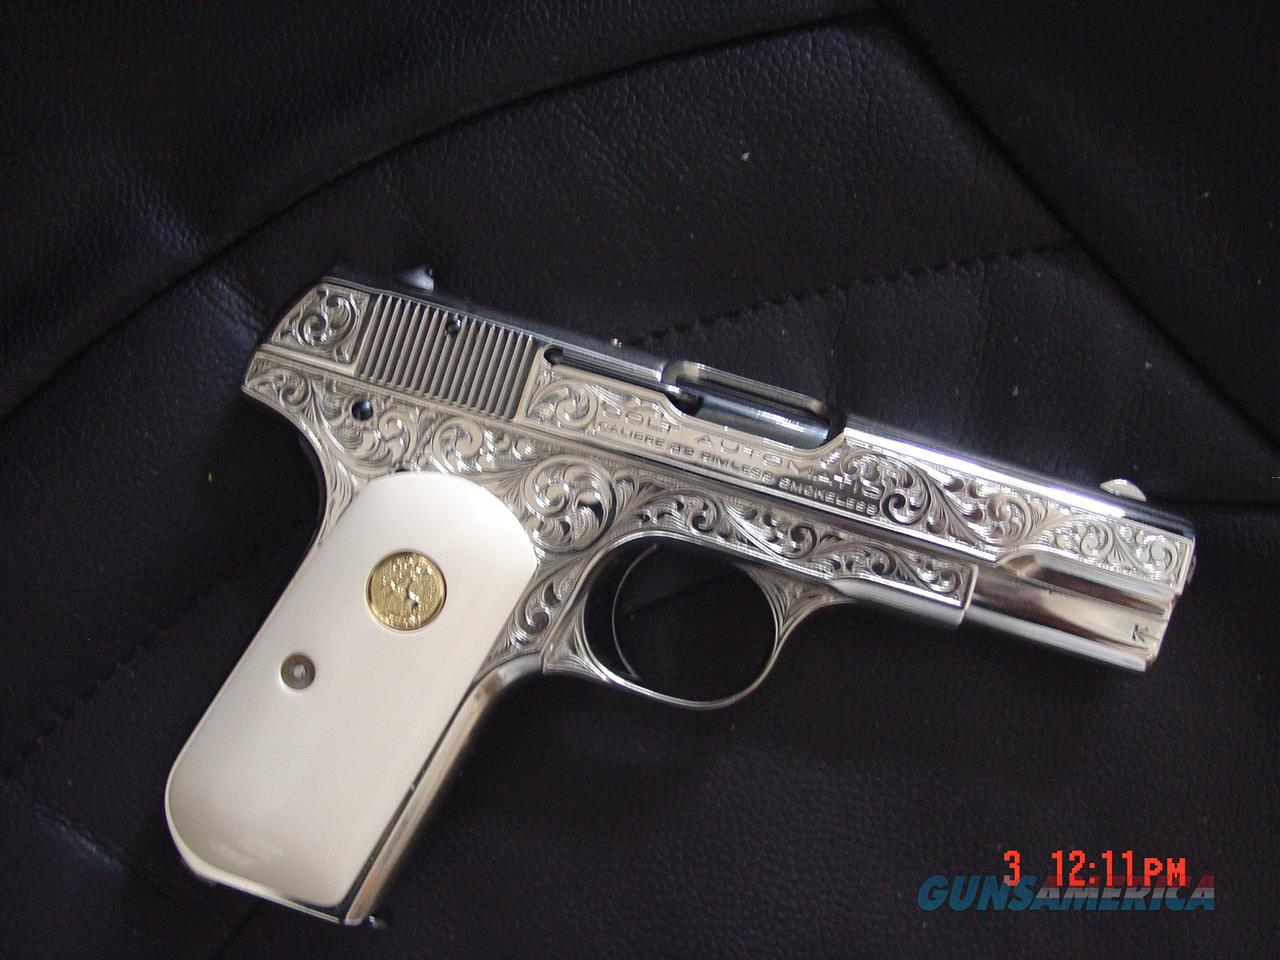 Colt 1903 hammerless,32 cal,Master engraved & refinished nickel w/blue accents,by S. Leis,certificate,bonded Ivory.a true masterpiece work of art !!  Guns > Pistols > Colt Automatic Pistols (.25, .32, & .380 cal)